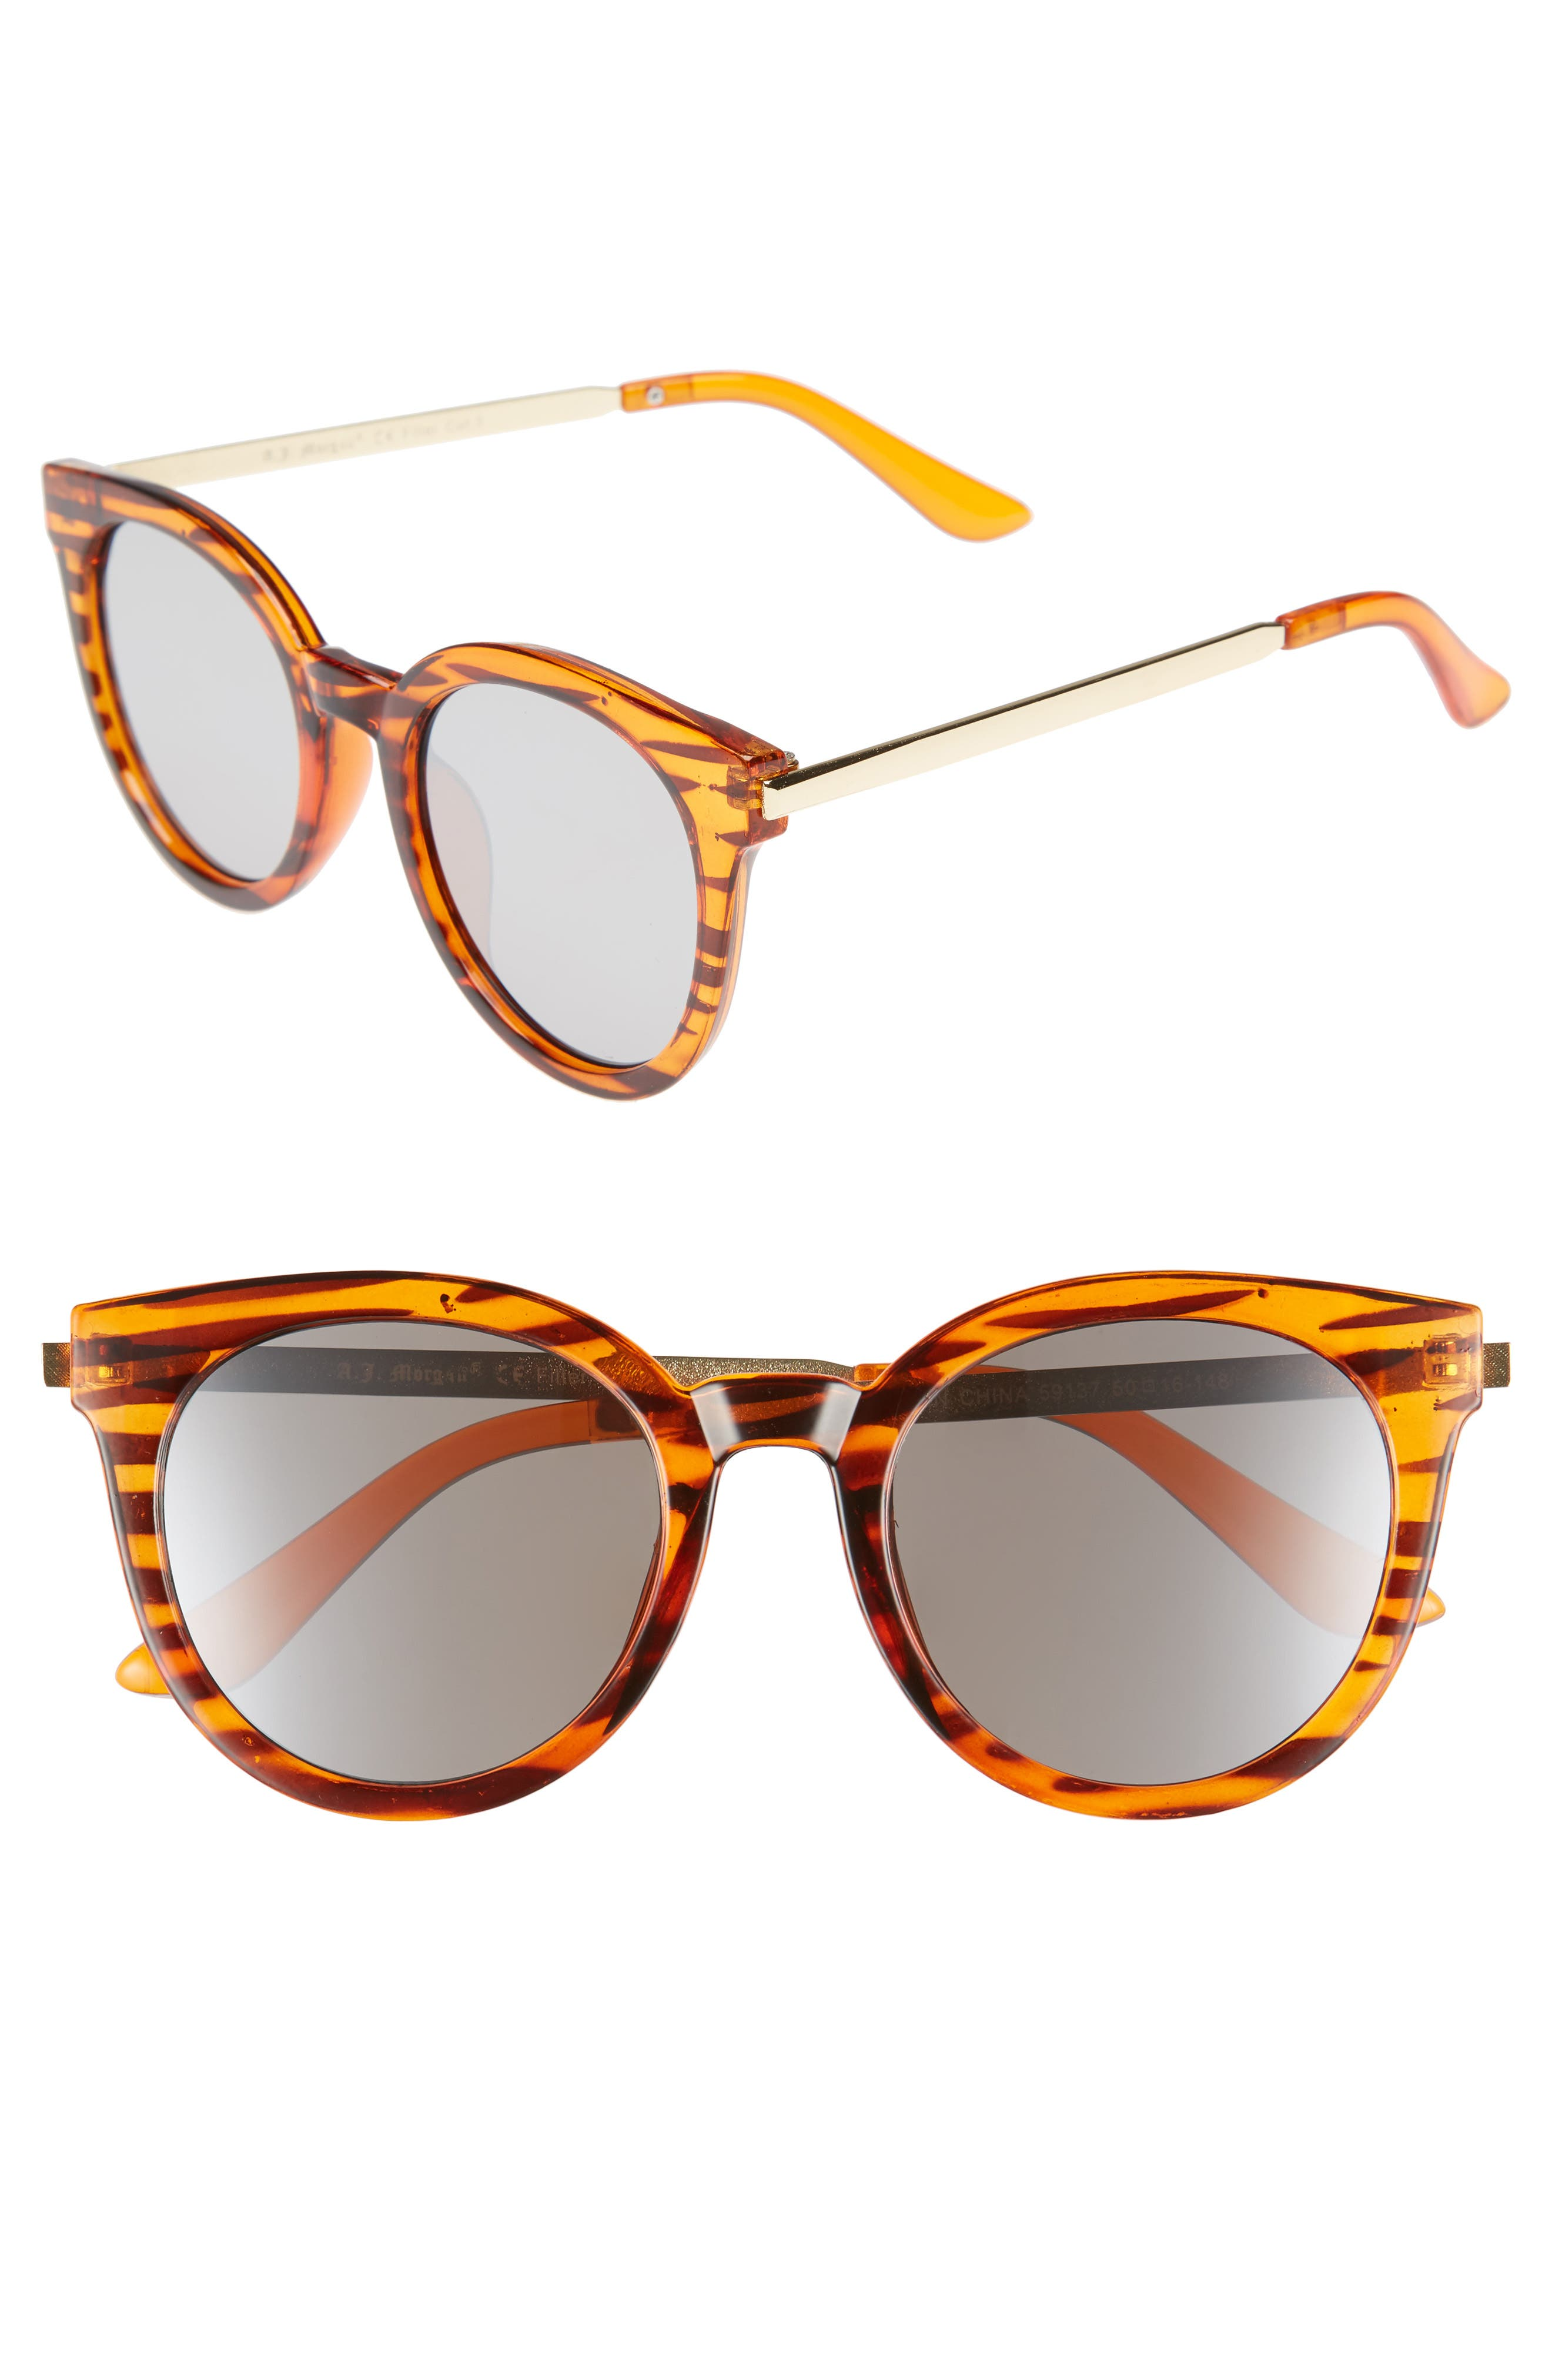 Alternate Image 1 Selected - A.J. Morgan Hi There 50mm Mirrored Round Sunglasses